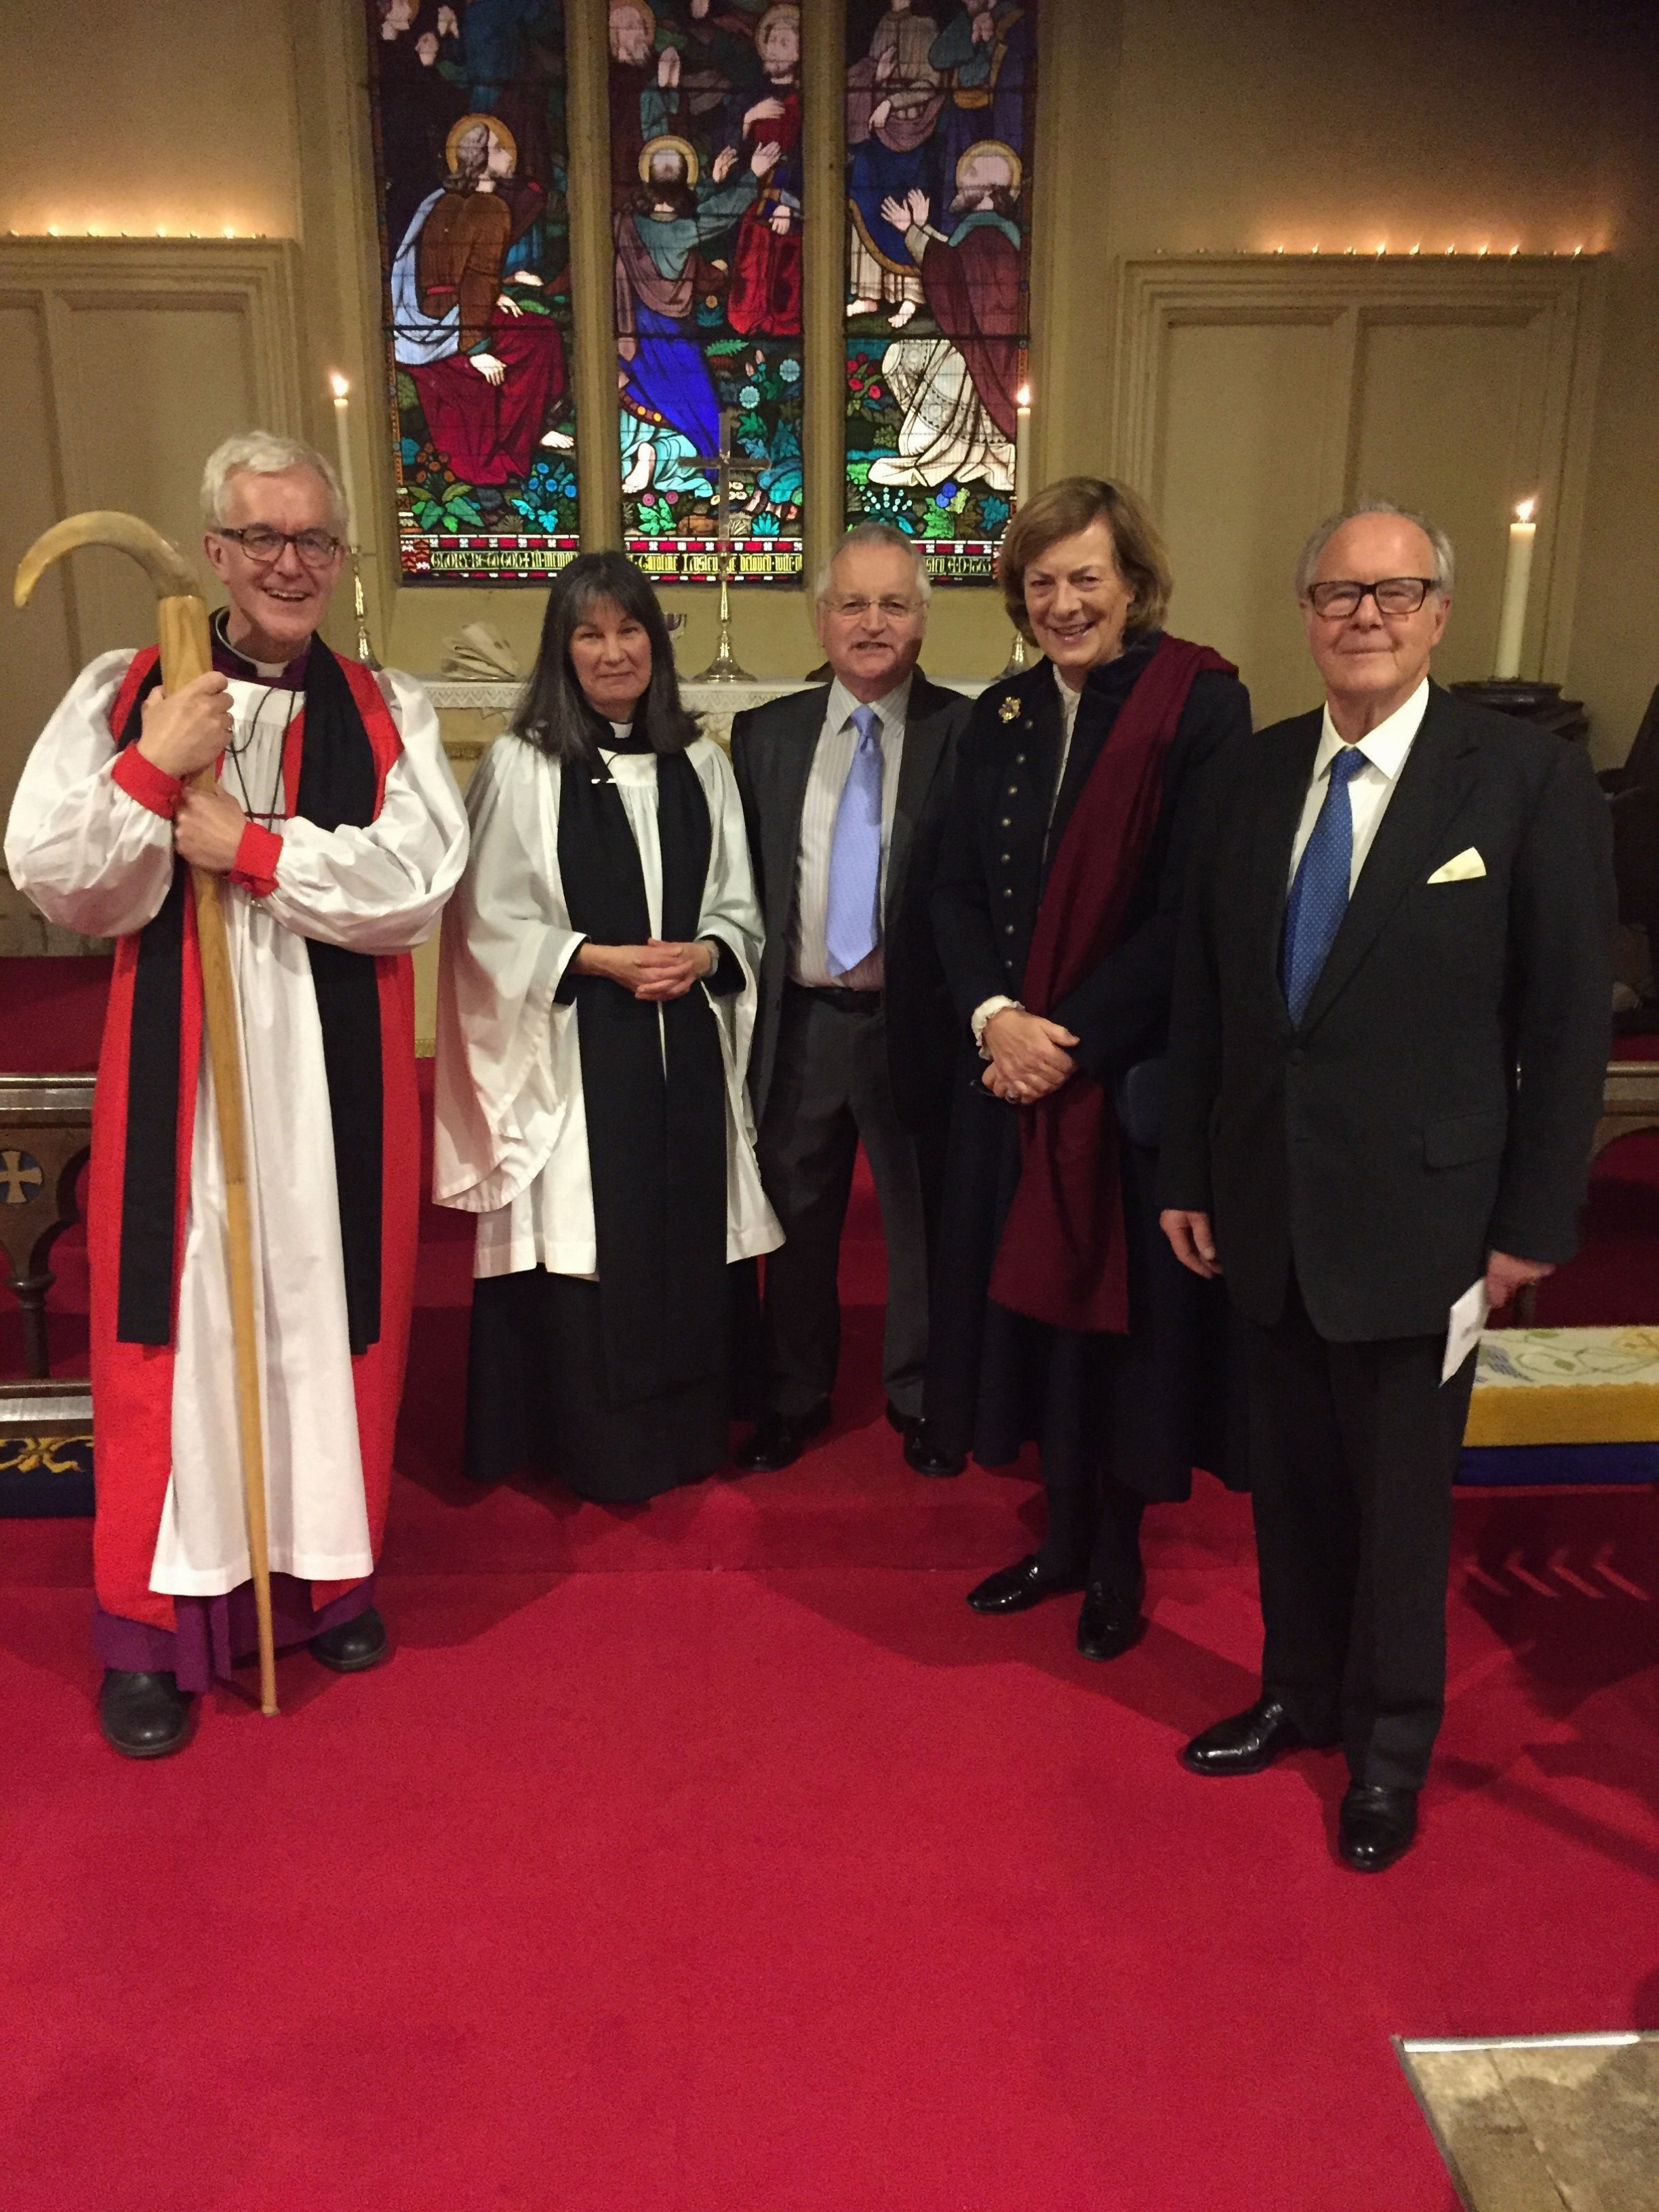 01 - (left to right) Bishop Ed, Rev Linda Carter, Richard Carter, Lady Lansdowne, Lord Lansdowne